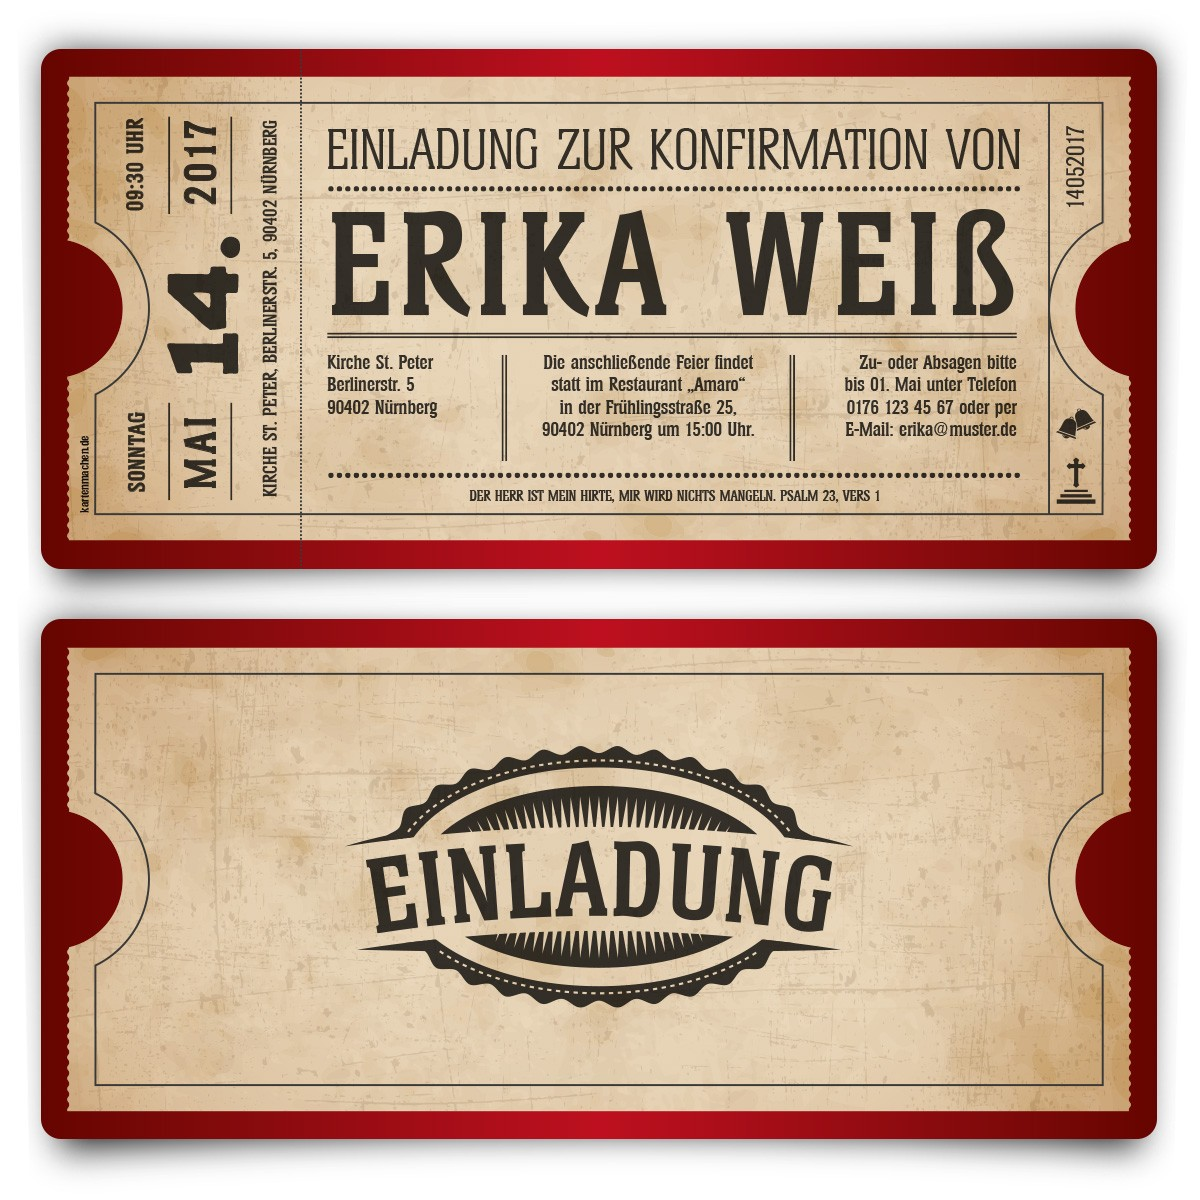 Großartig Konfirmation Einladungskarten   Vintage Ticket In Rot